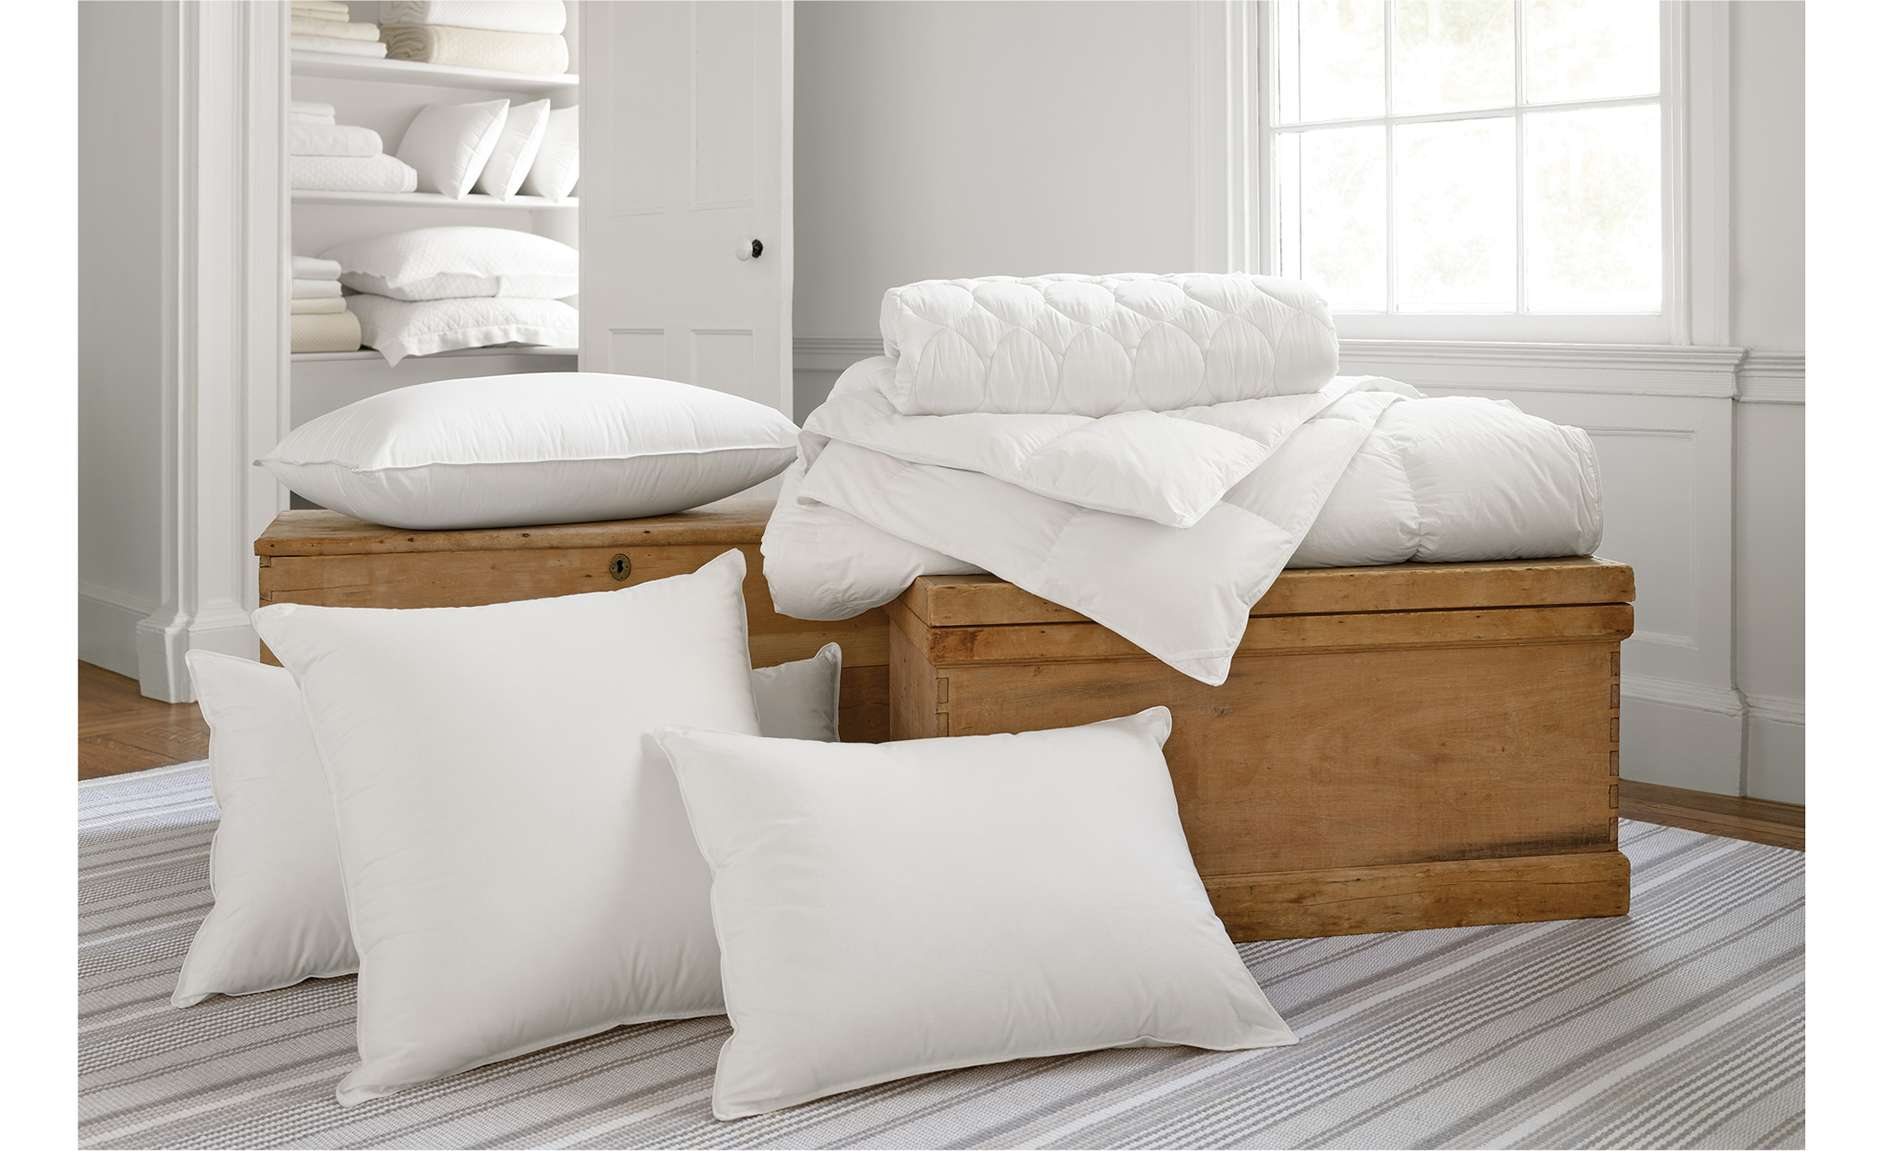 Shop Duvets, Quilts, and Coverlets